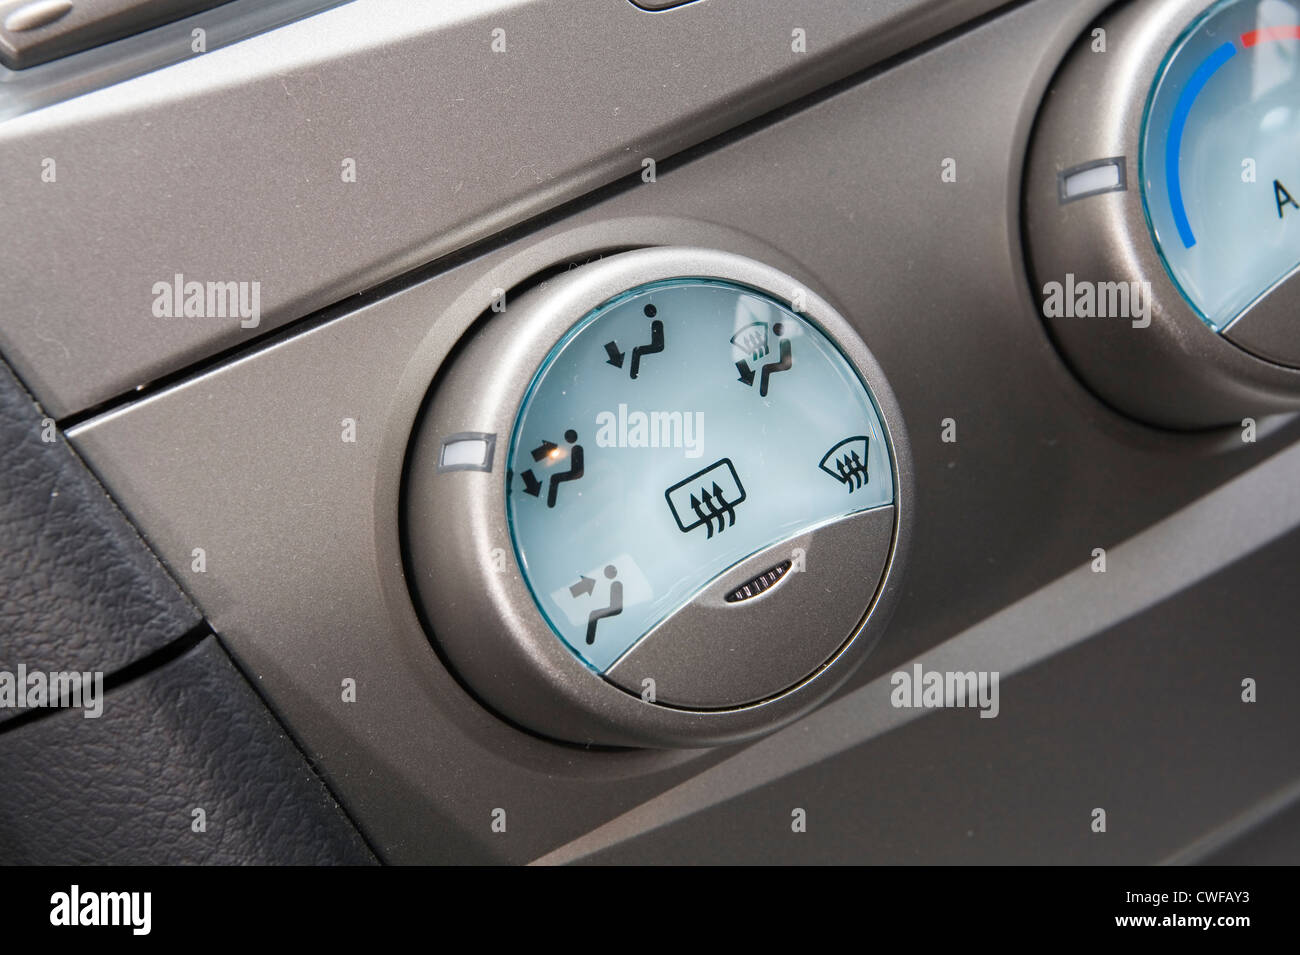 Air conditioning control dial in the cockpit cabin of a car. - Stock Image